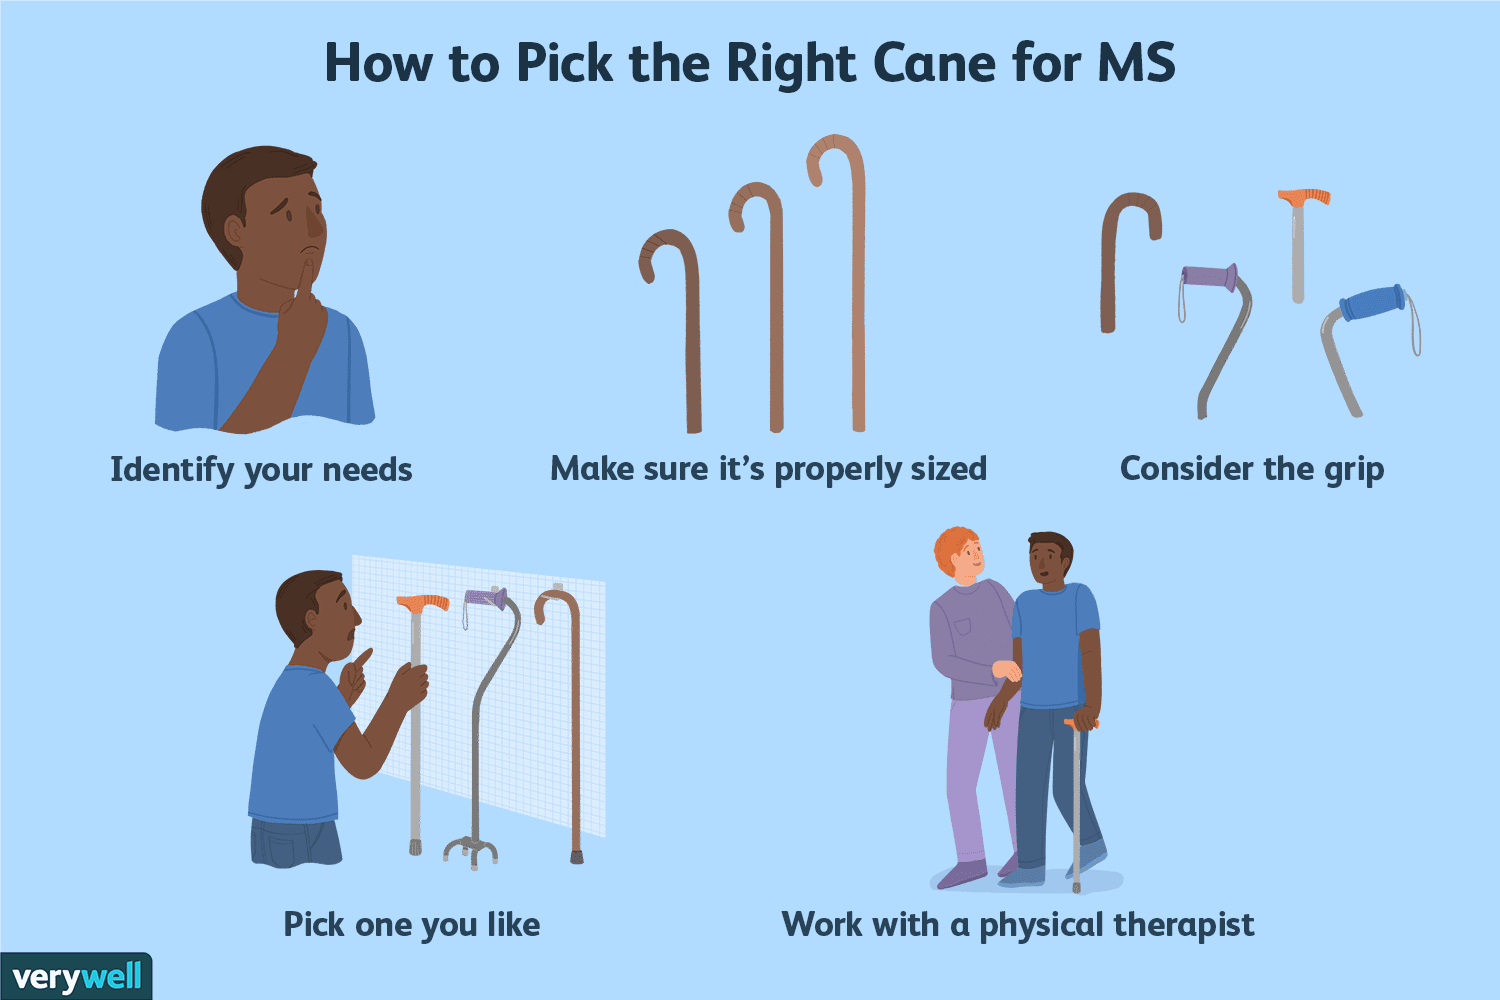 How to Pick the Right Cane for Multiple Sclerosis